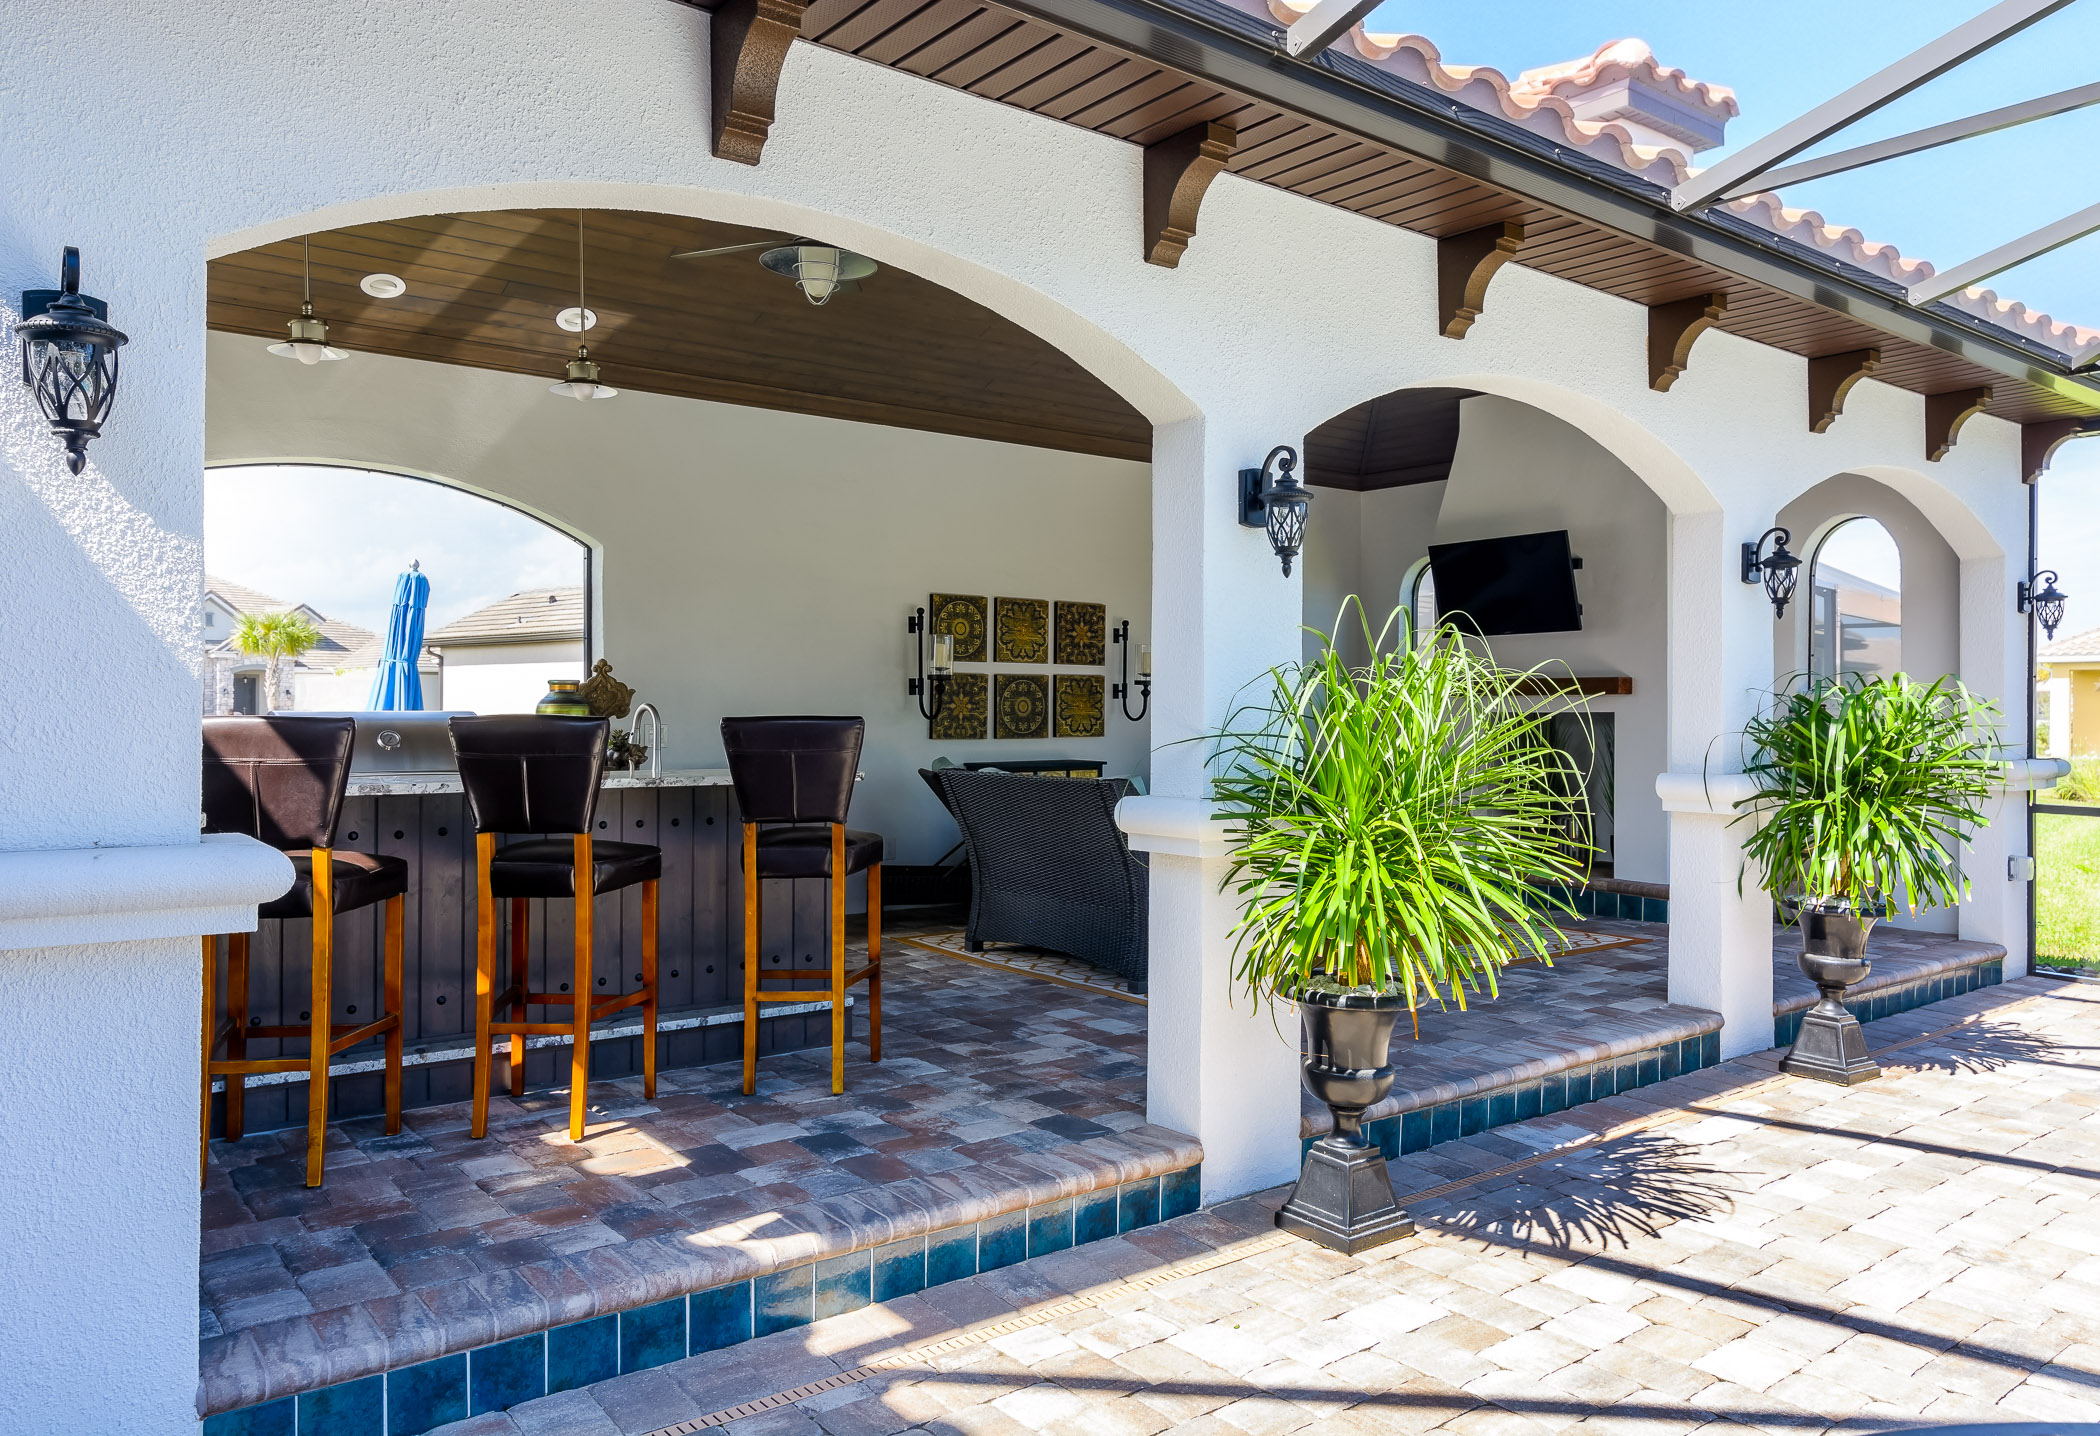 CABANA WITH STONE PAVERS AND PORCELAIN TILE